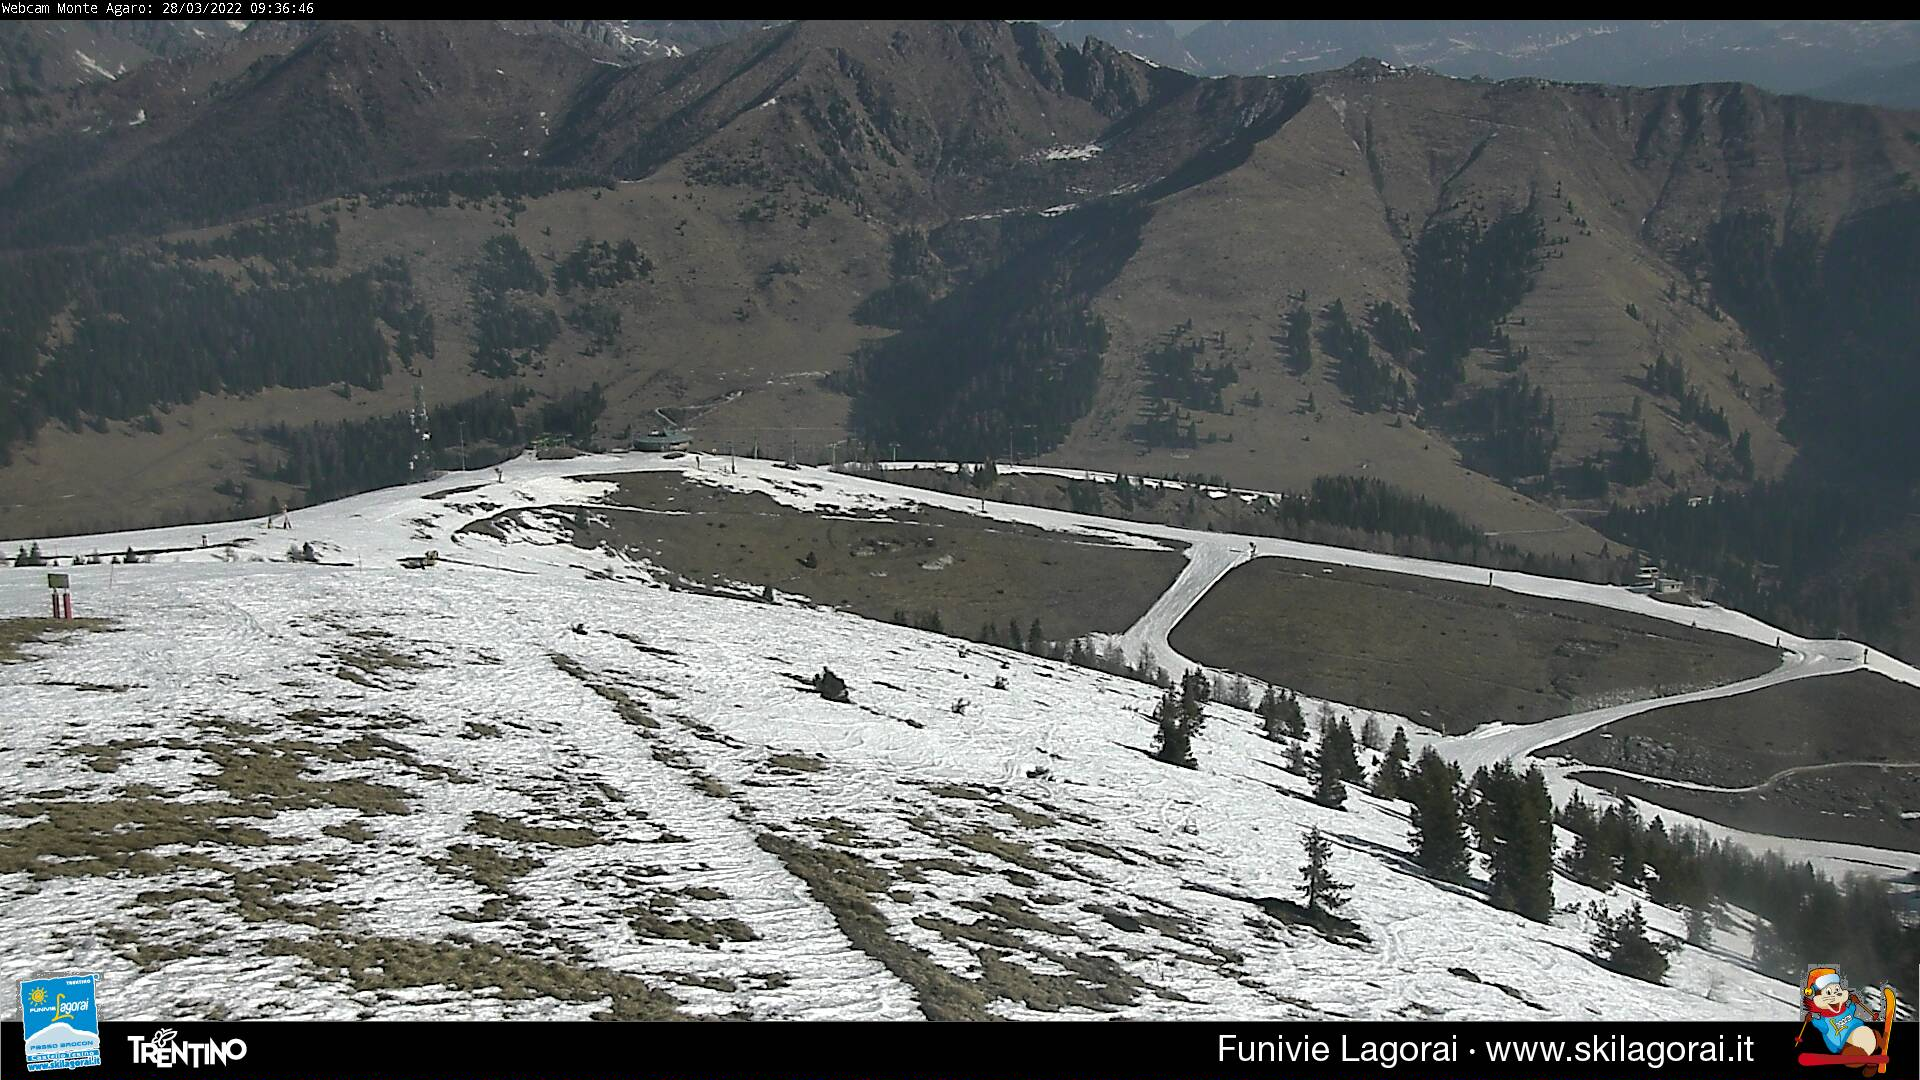 Webcam Monte Agaro Matusa